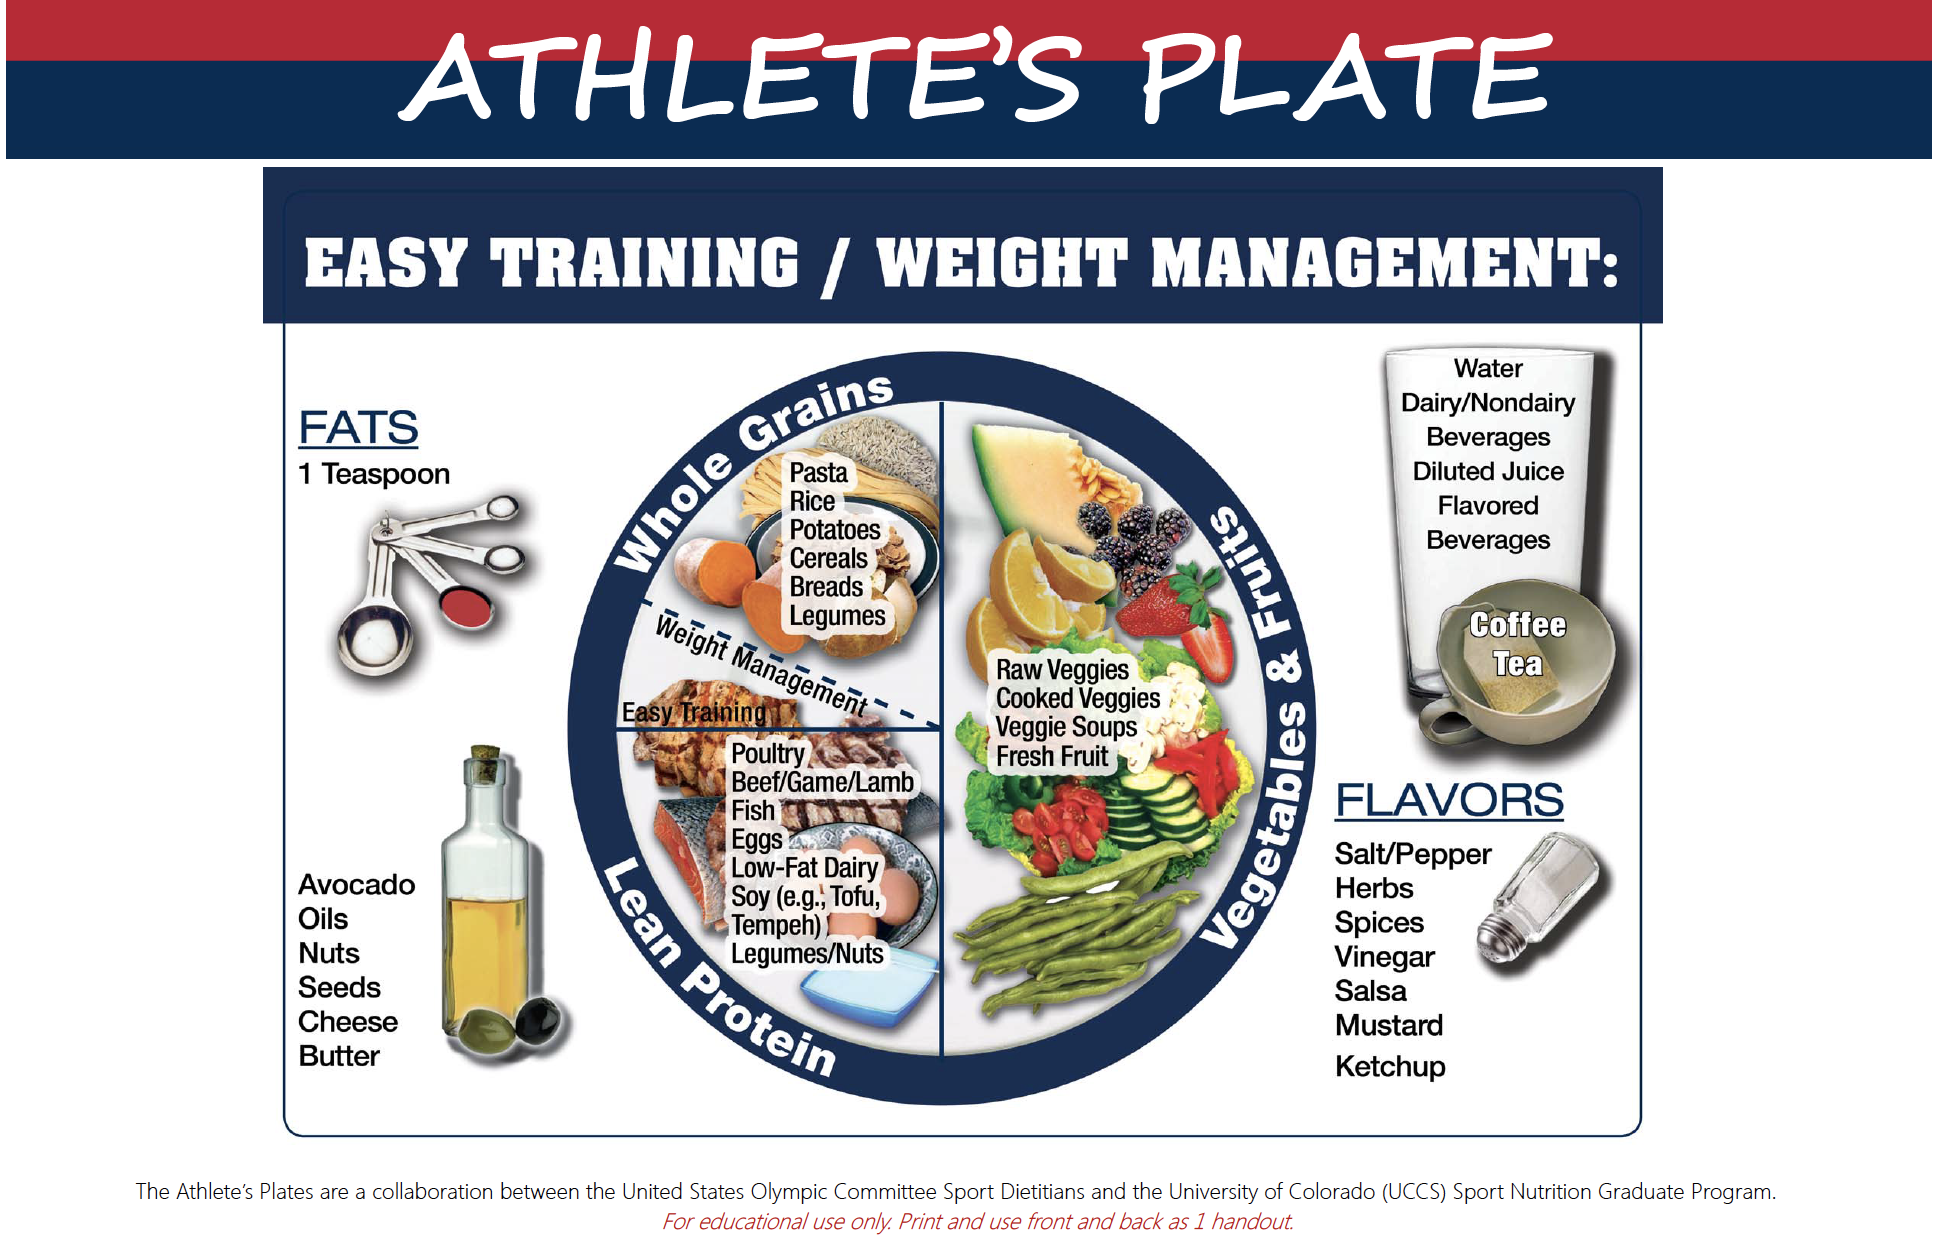 athlete's plate, easy day